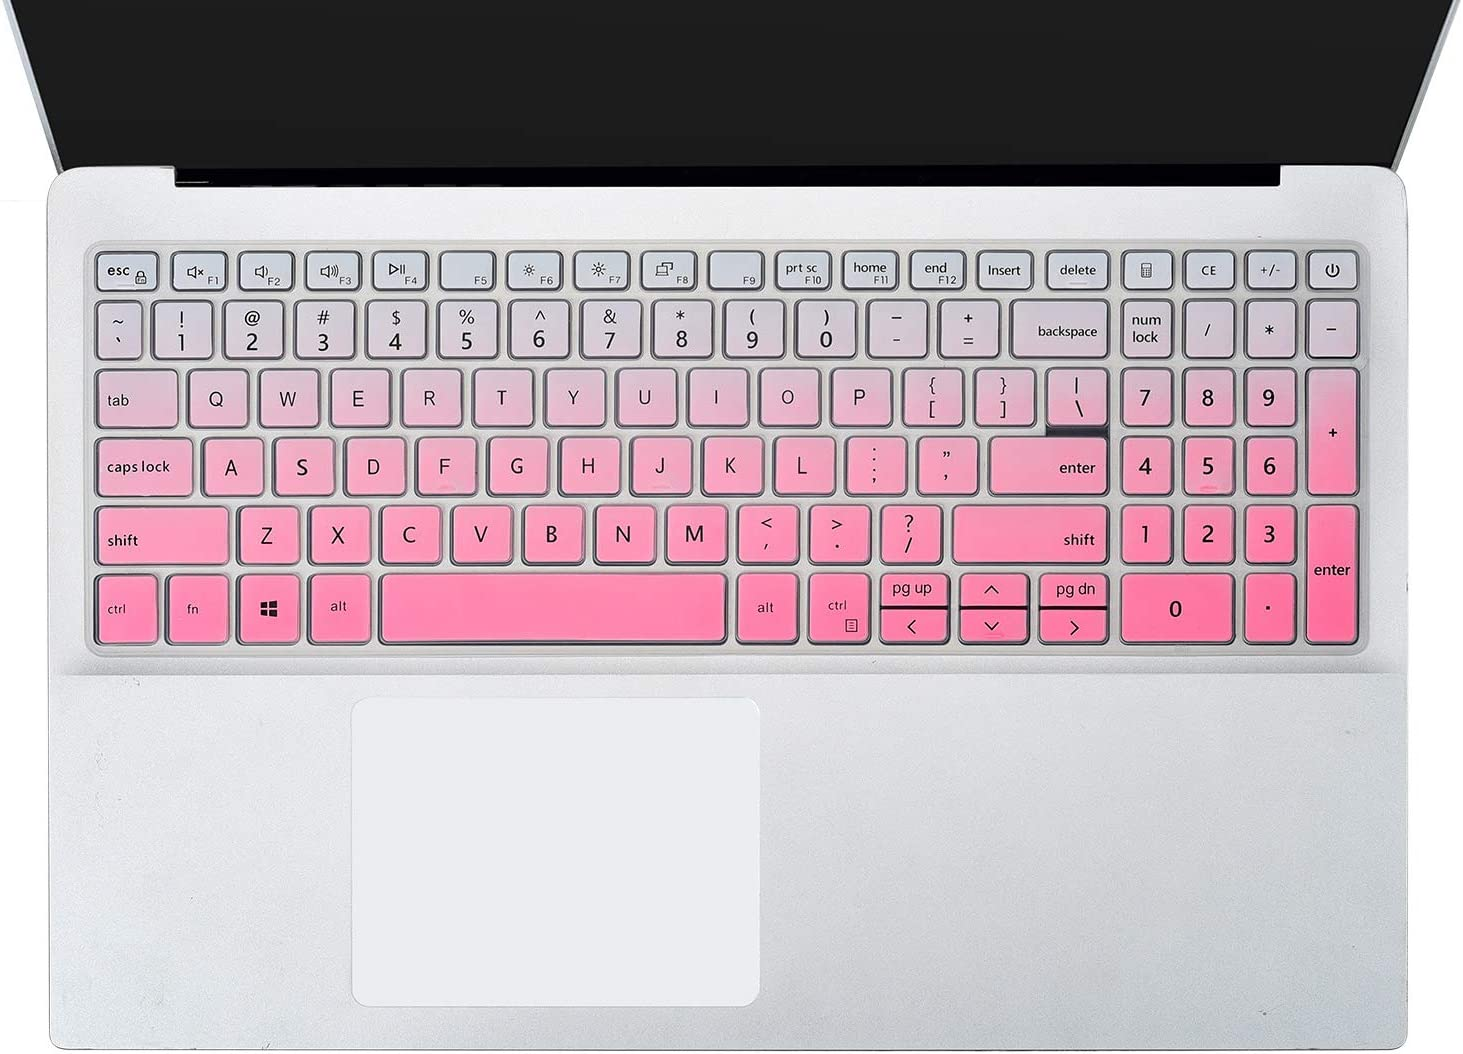 Keyboard Cover Skins Compatible with Dell Inspiron 15 3000 3505 3502 3501 /Dell Inspiron 15 5000 5584 5590 5593 5598 5508 5501/ Dell Vostro 15 7590 5590 Keyobard Protective Skin